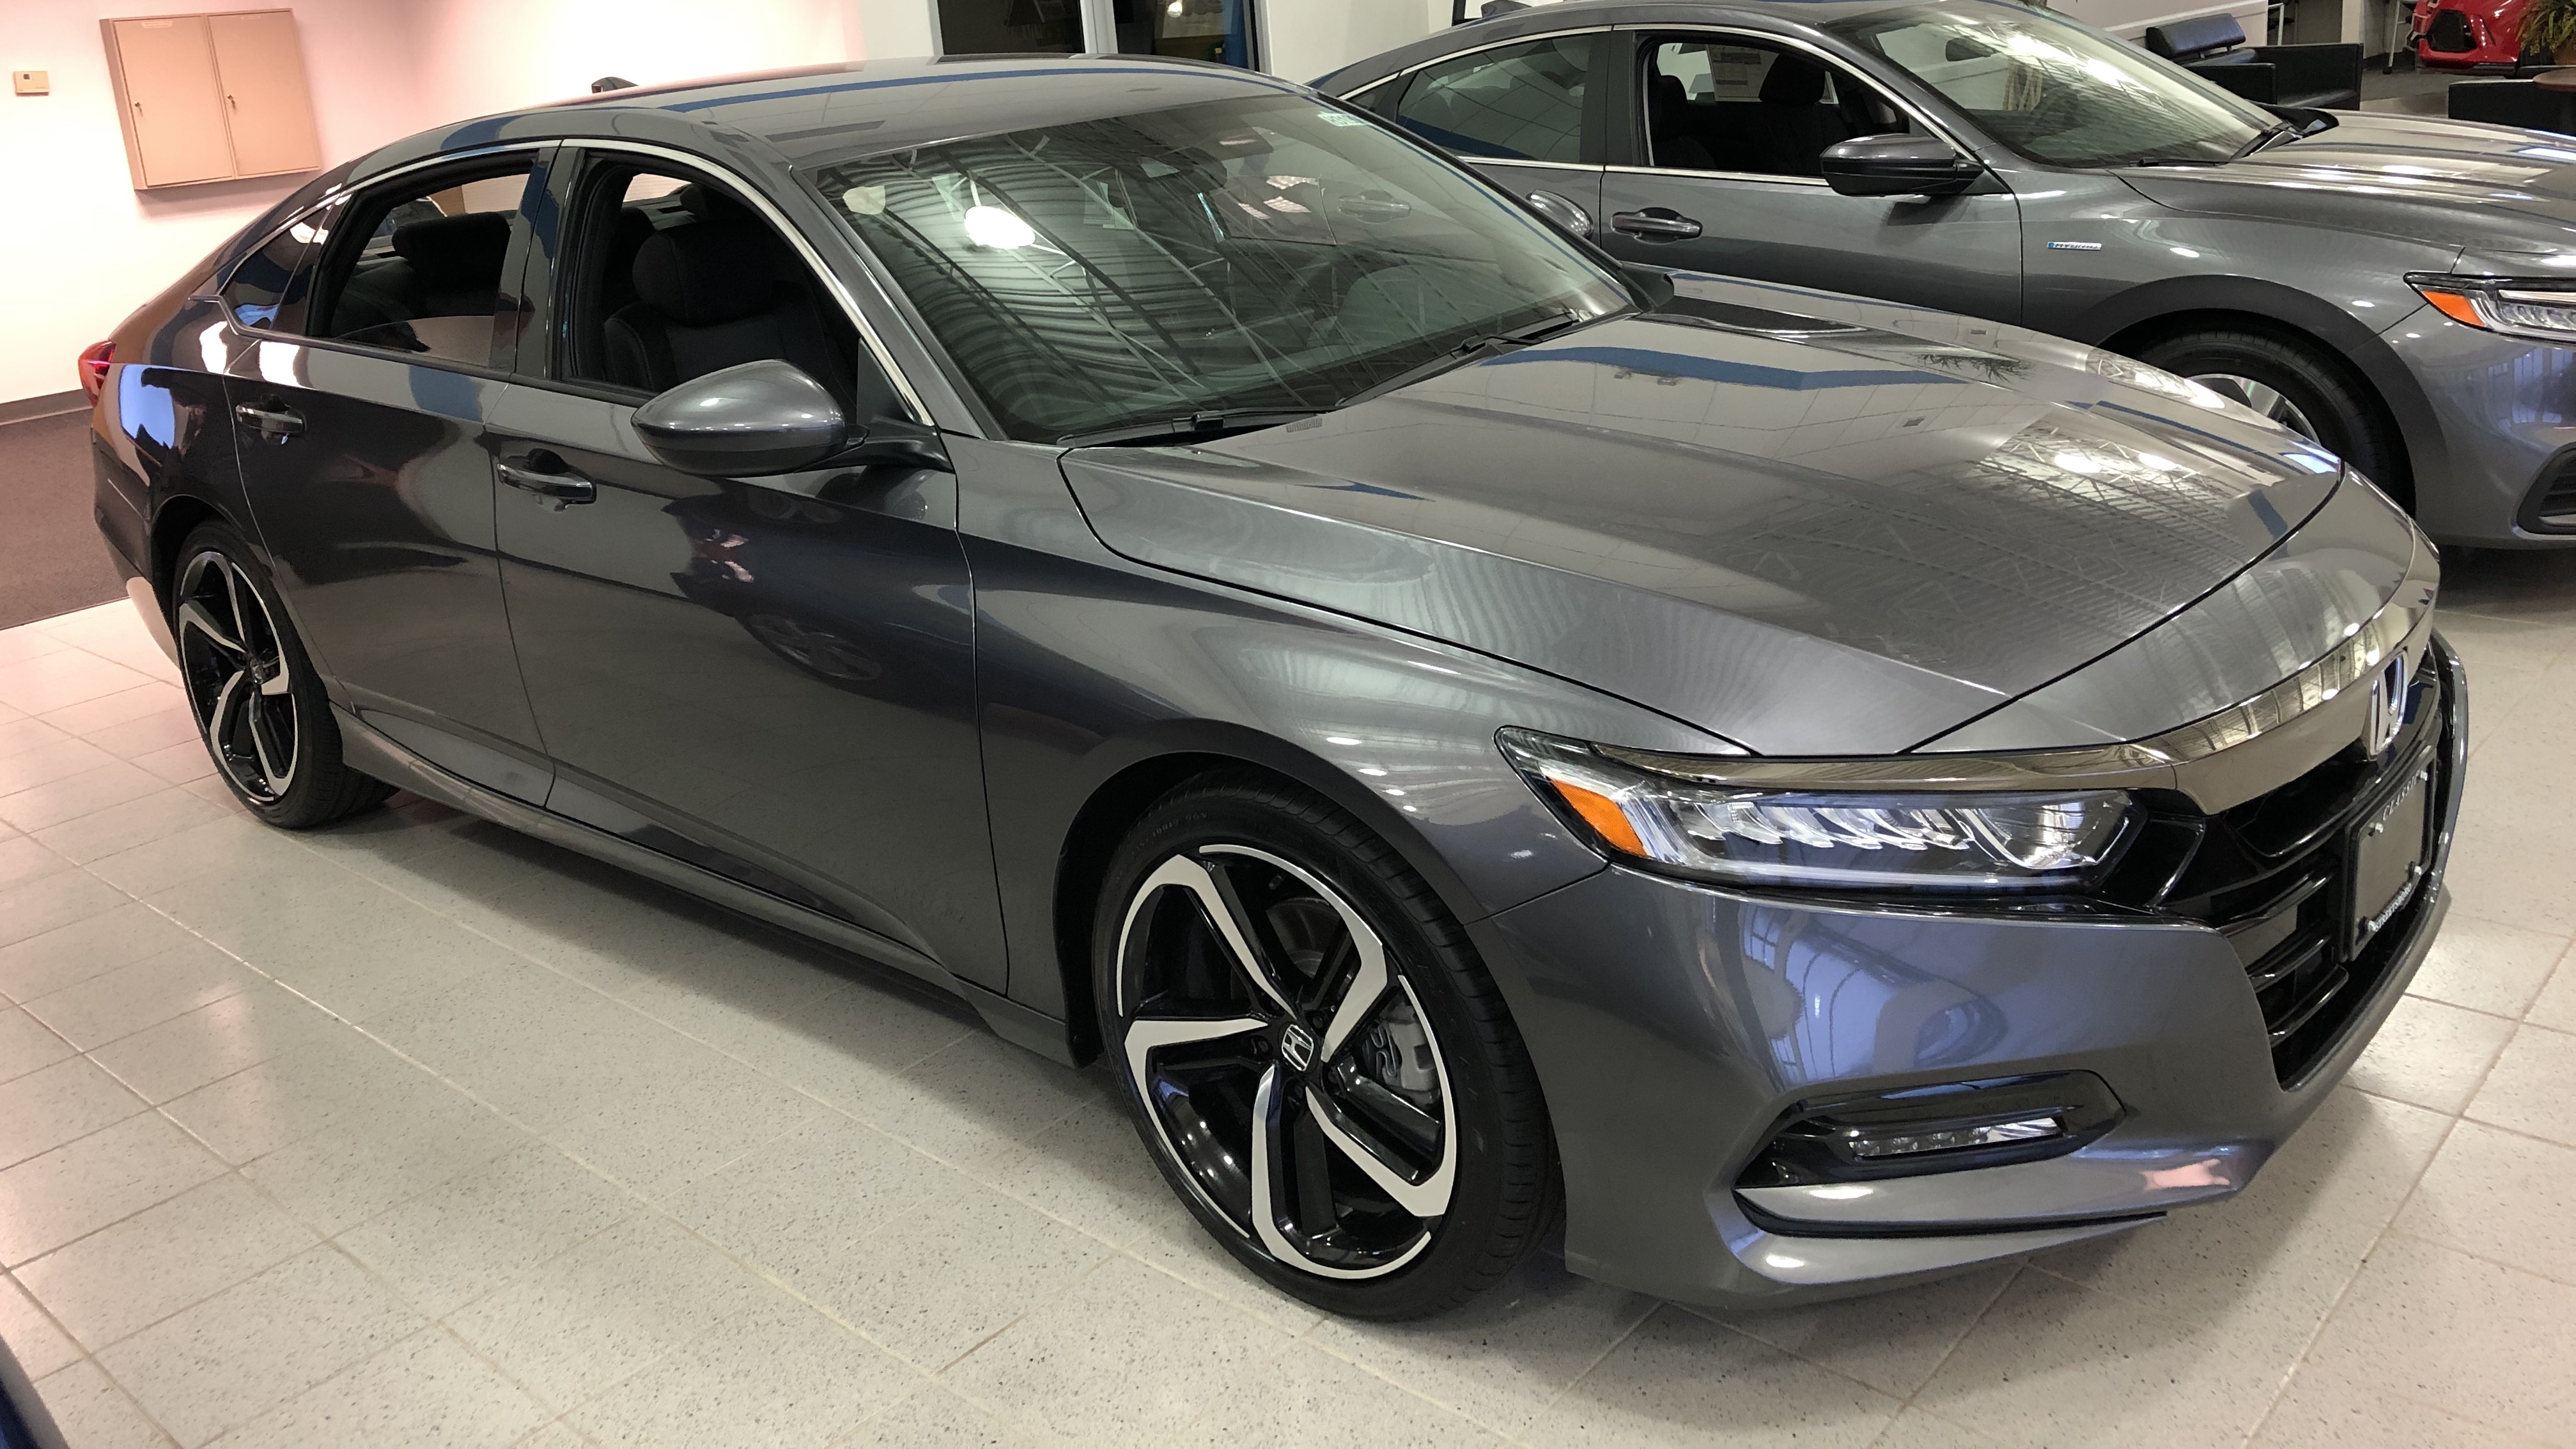 File:2019 Honda Accord 1.5T Sport, 1.4.20.jpg - Wikimedia Commons